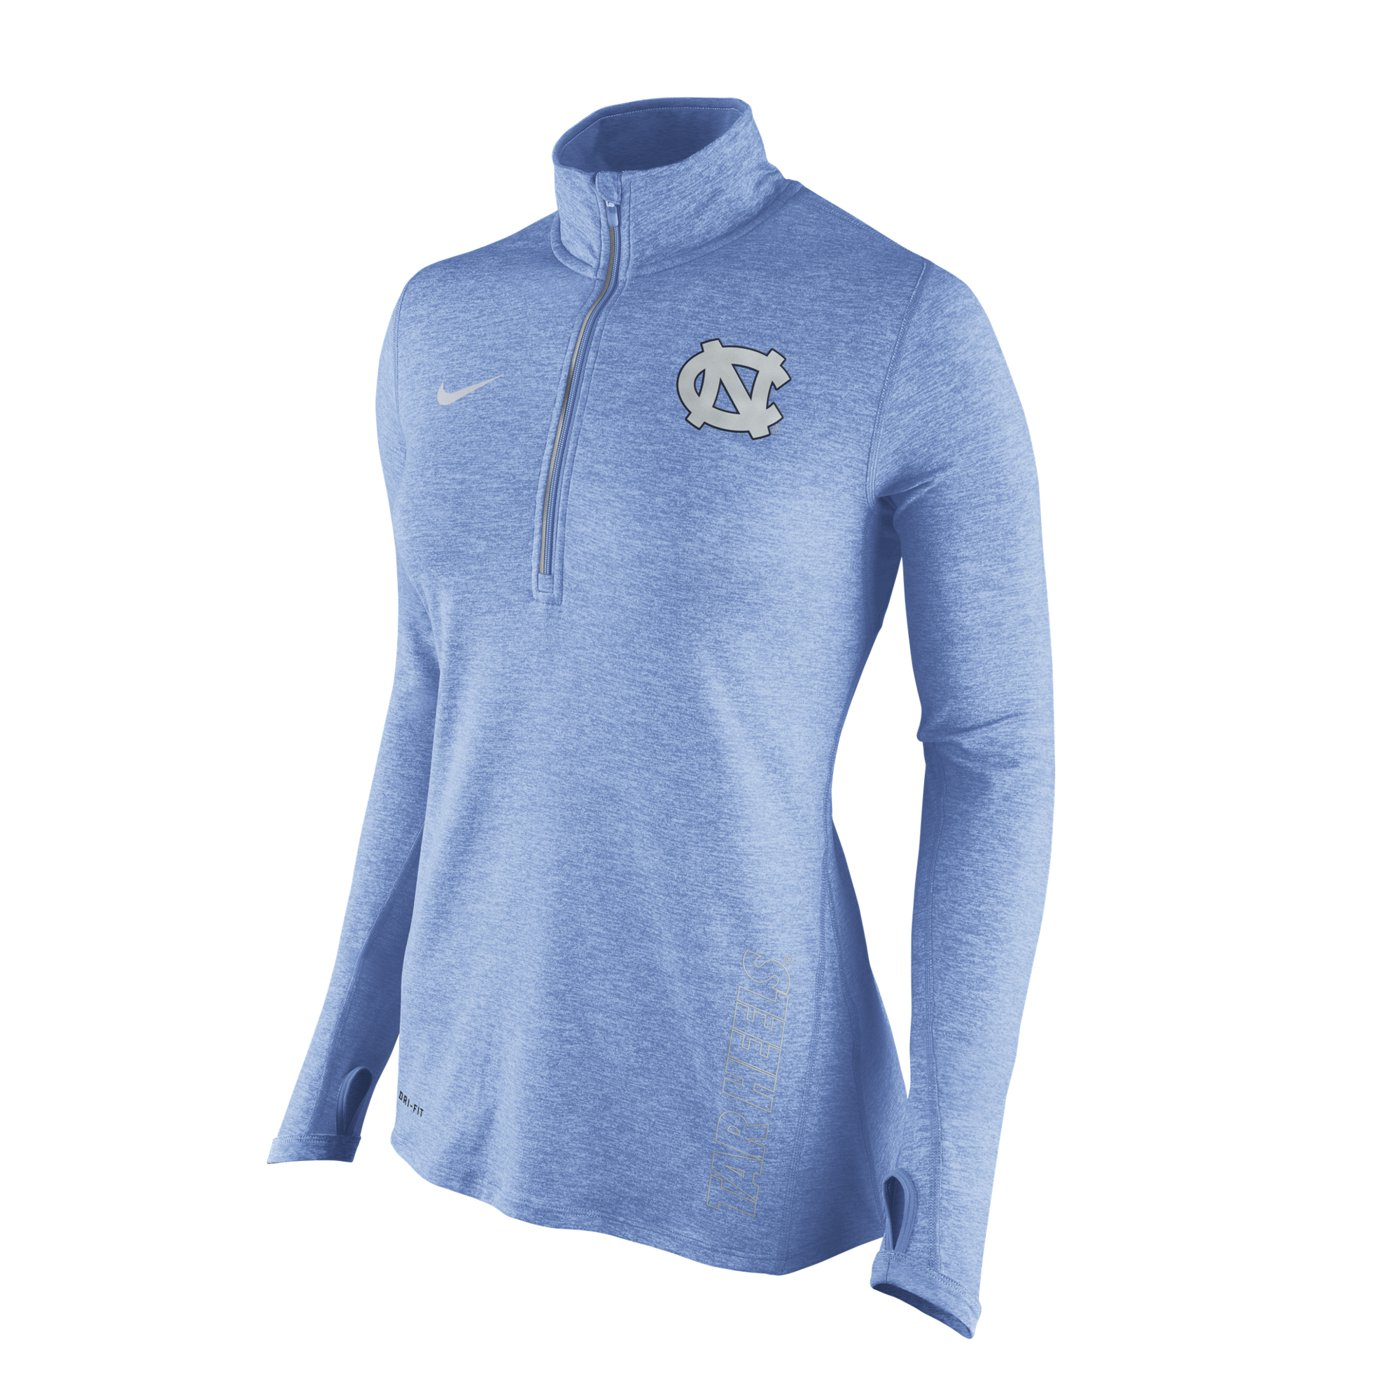 46a20329d923 Johnny T-shirt - North Carolina Tar Heels - SALE ITEMS - Nike Ladies   Stadium Element 1 2-Zip Pullover (CB Heather) by Nike